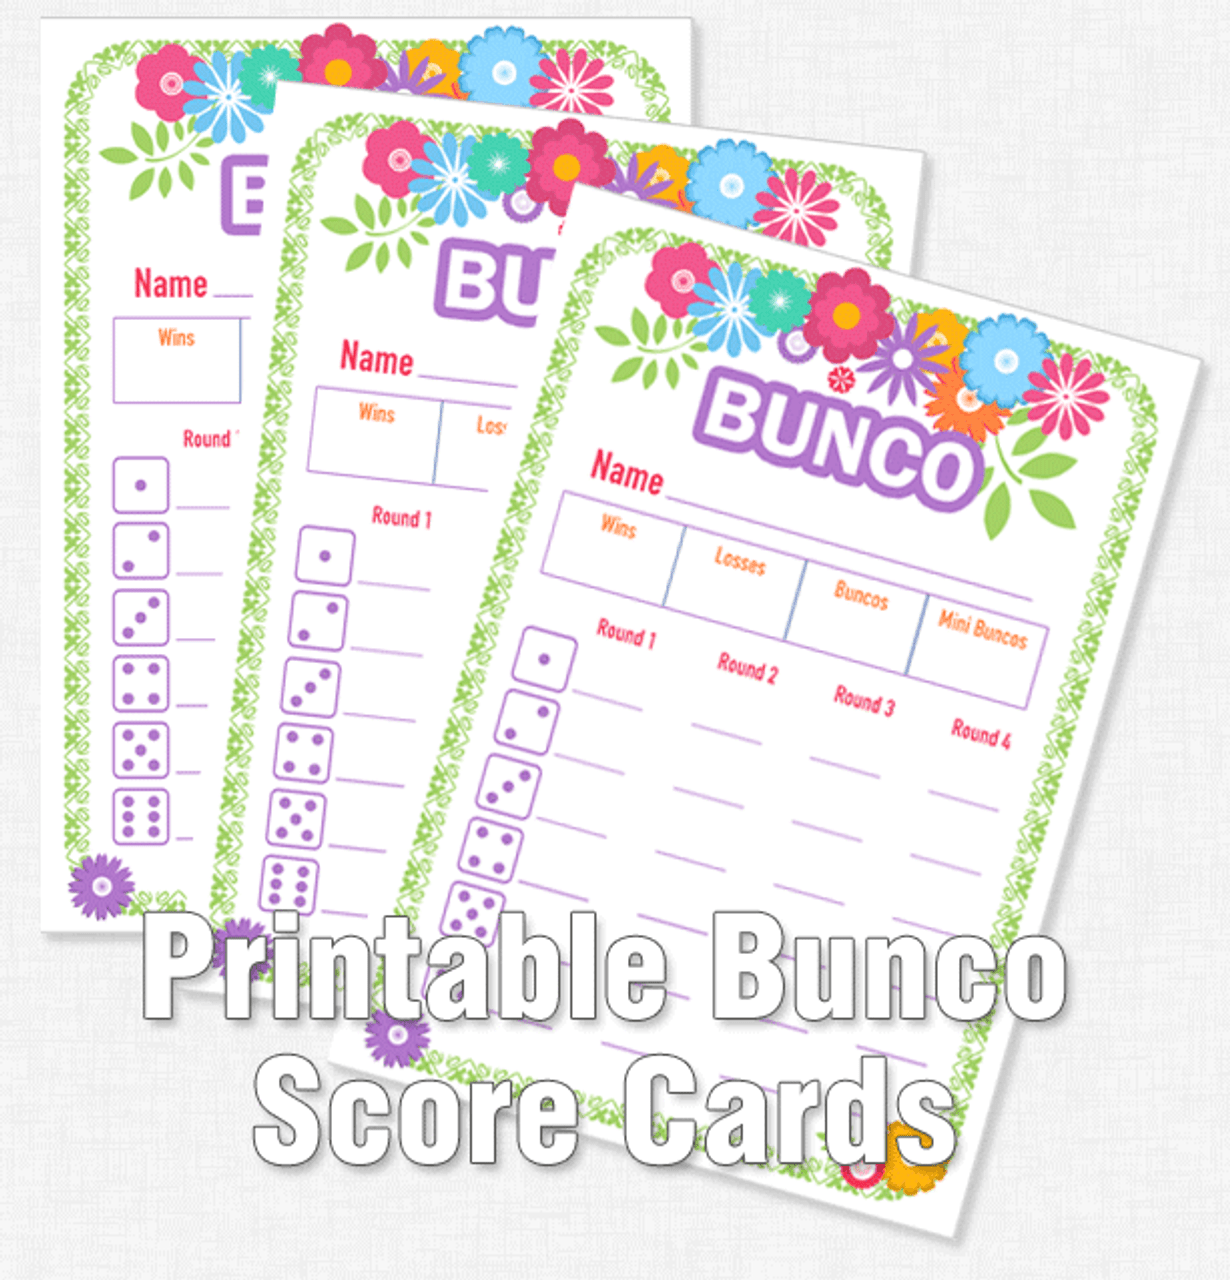 picture about Printable Bunco Score Cards called Printable Flower Bunco Rating Playing cards